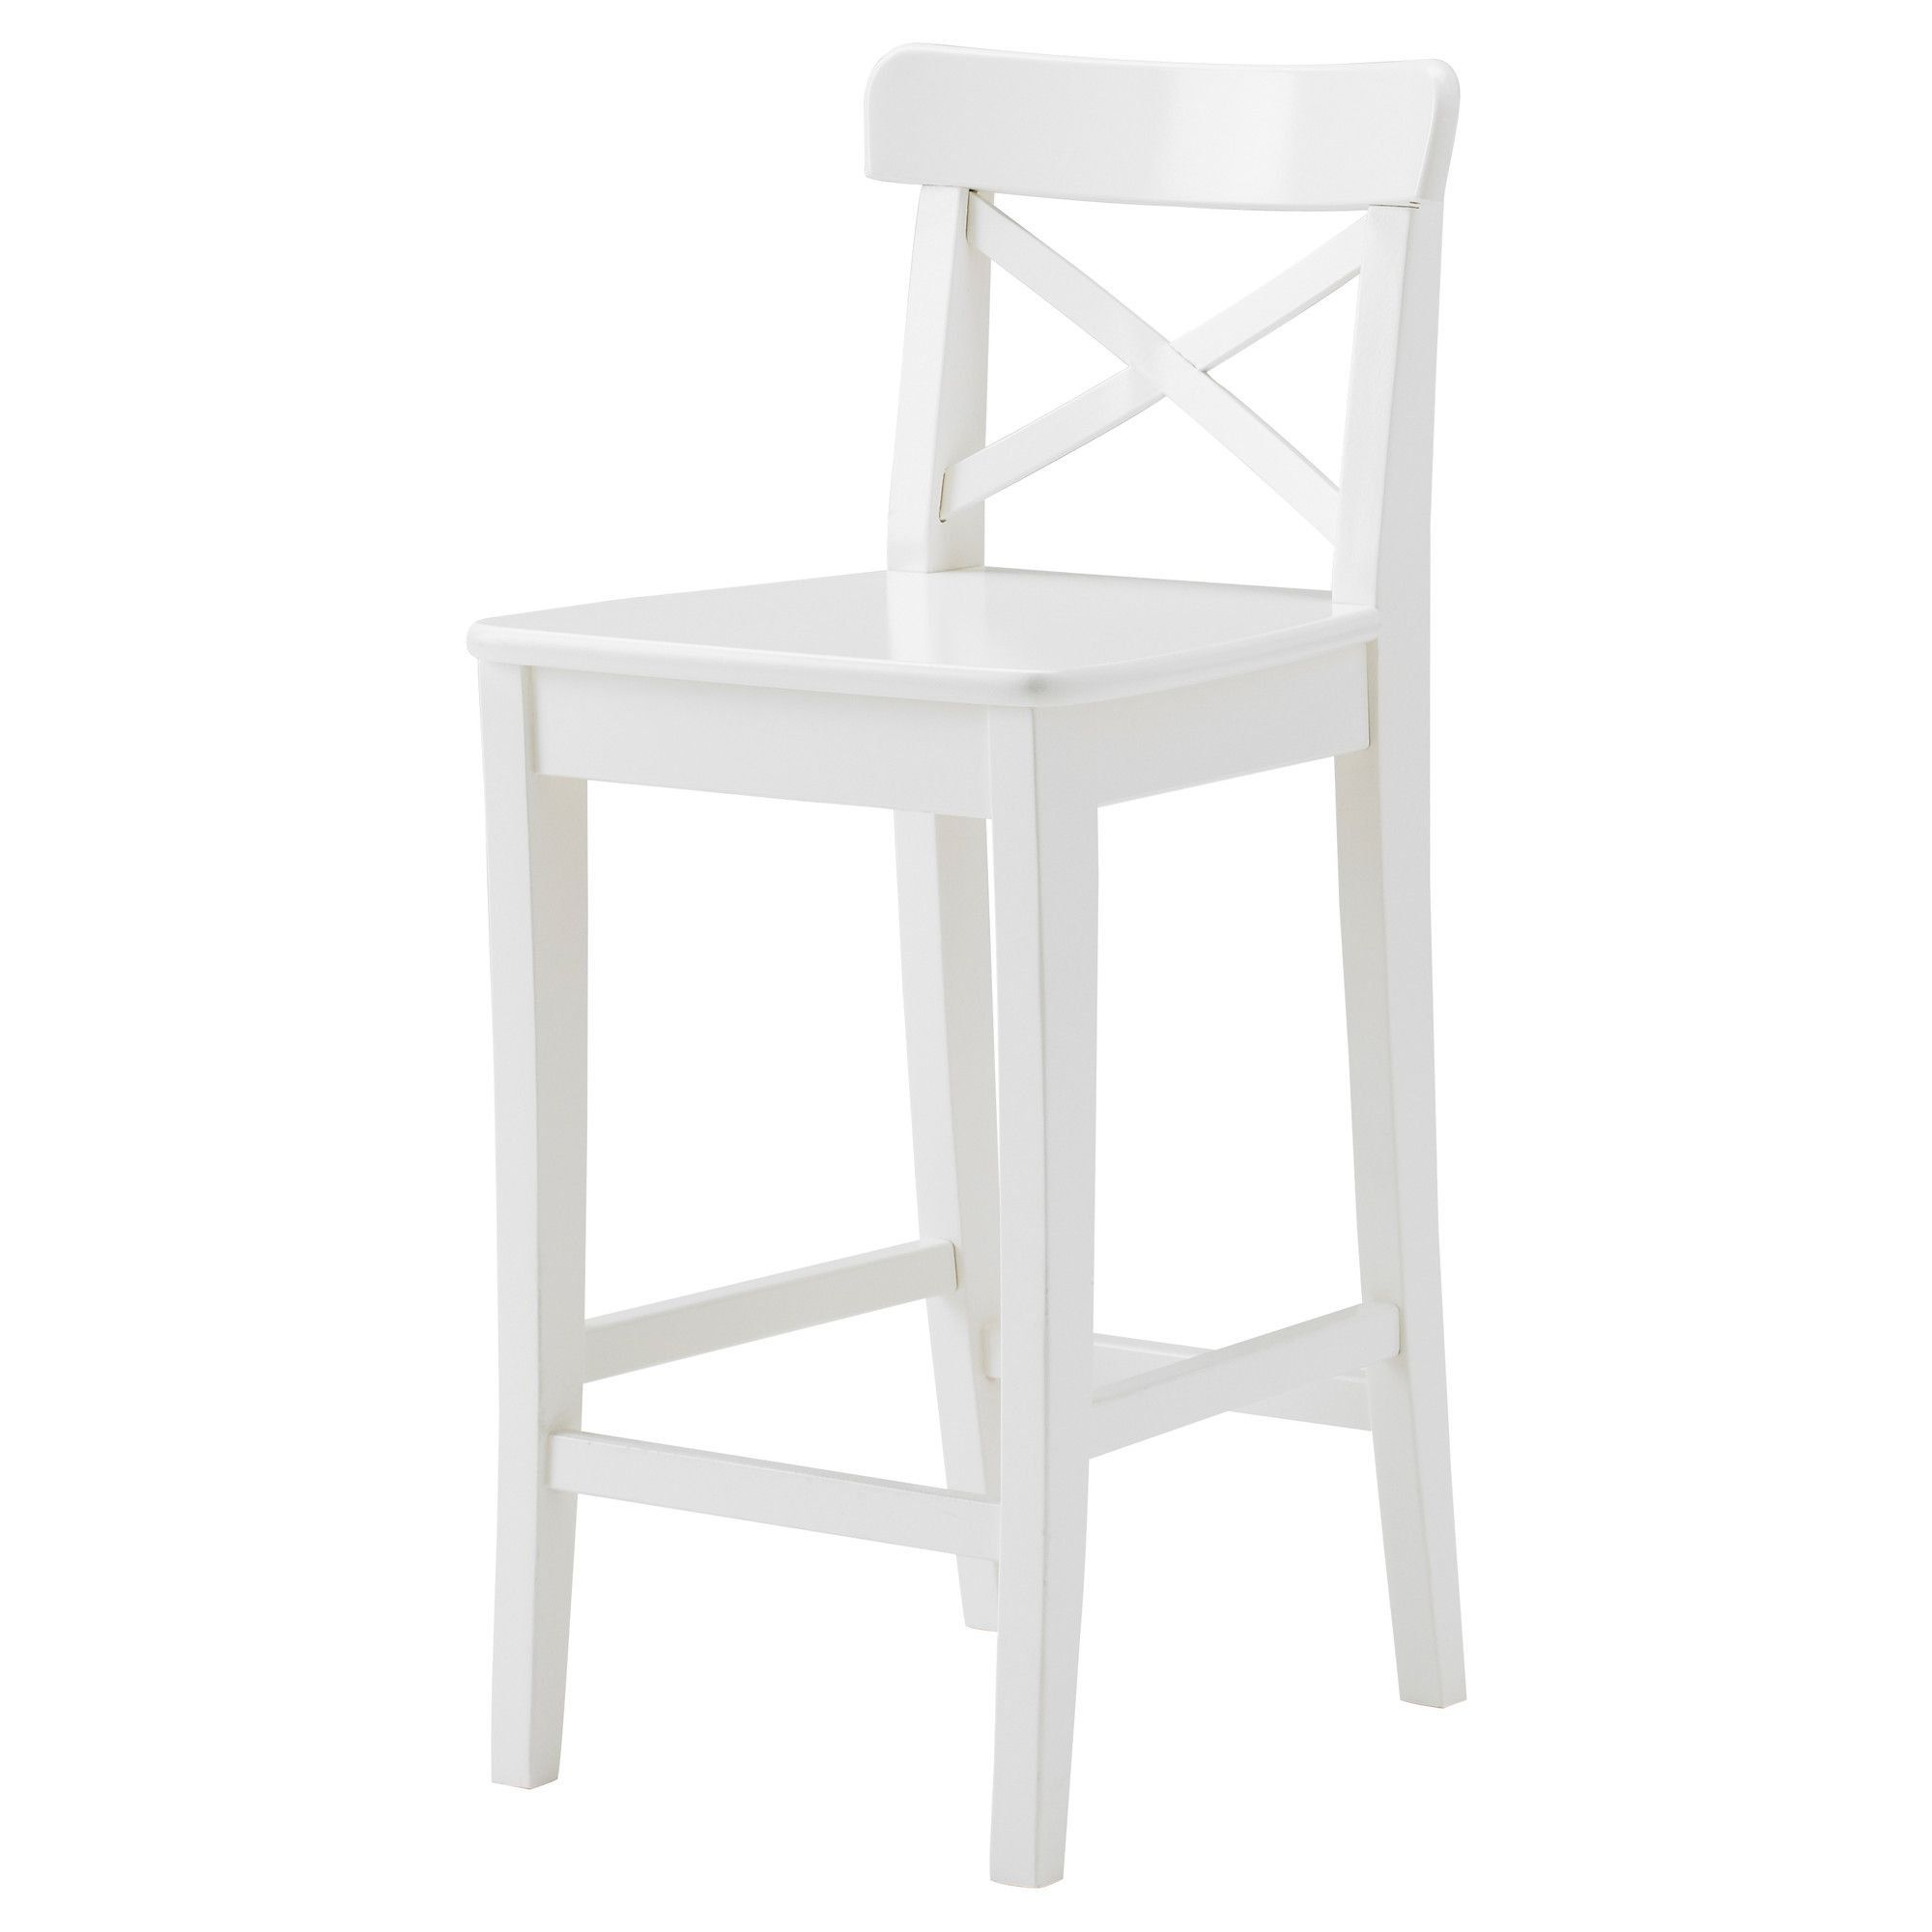 ingolf tabouret de bar dossier blanc tabourets de bar tabouret et ikea. Black Bedroom Furniture Sets. Home Design Ideas